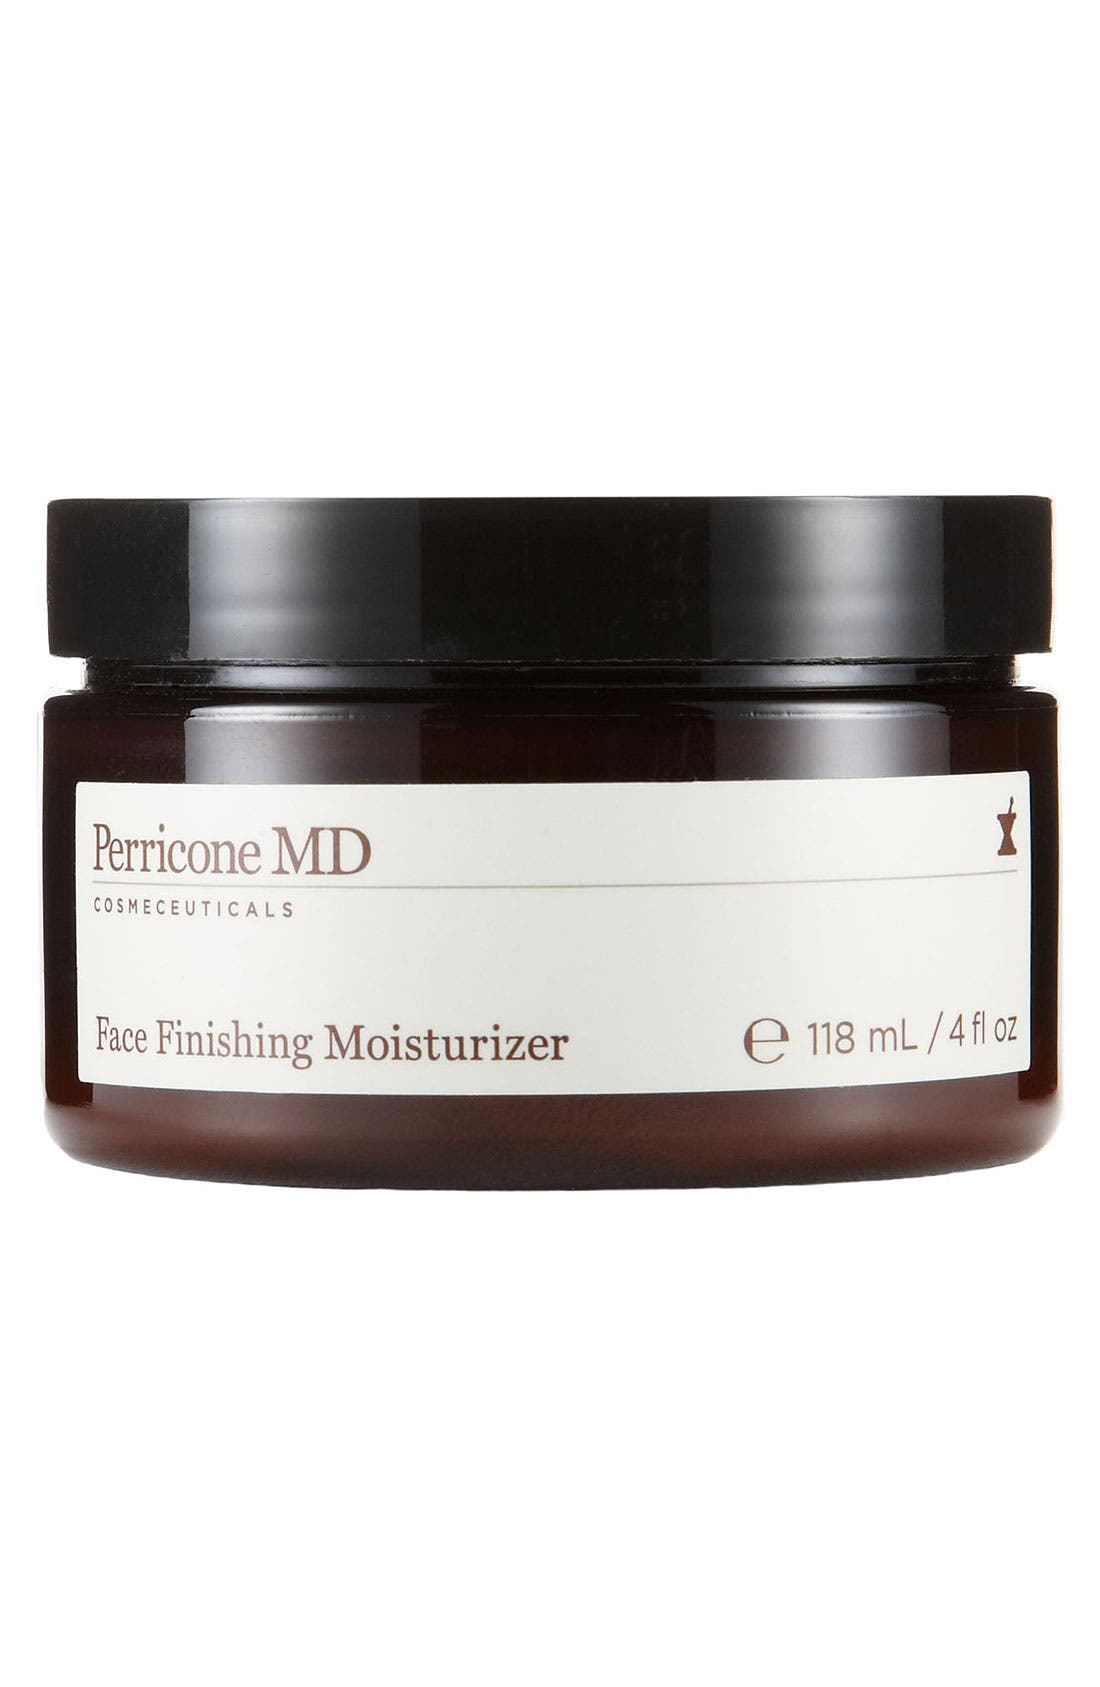 Perricone MD Large Size Face Finishing Moisturizer ($130 Value)